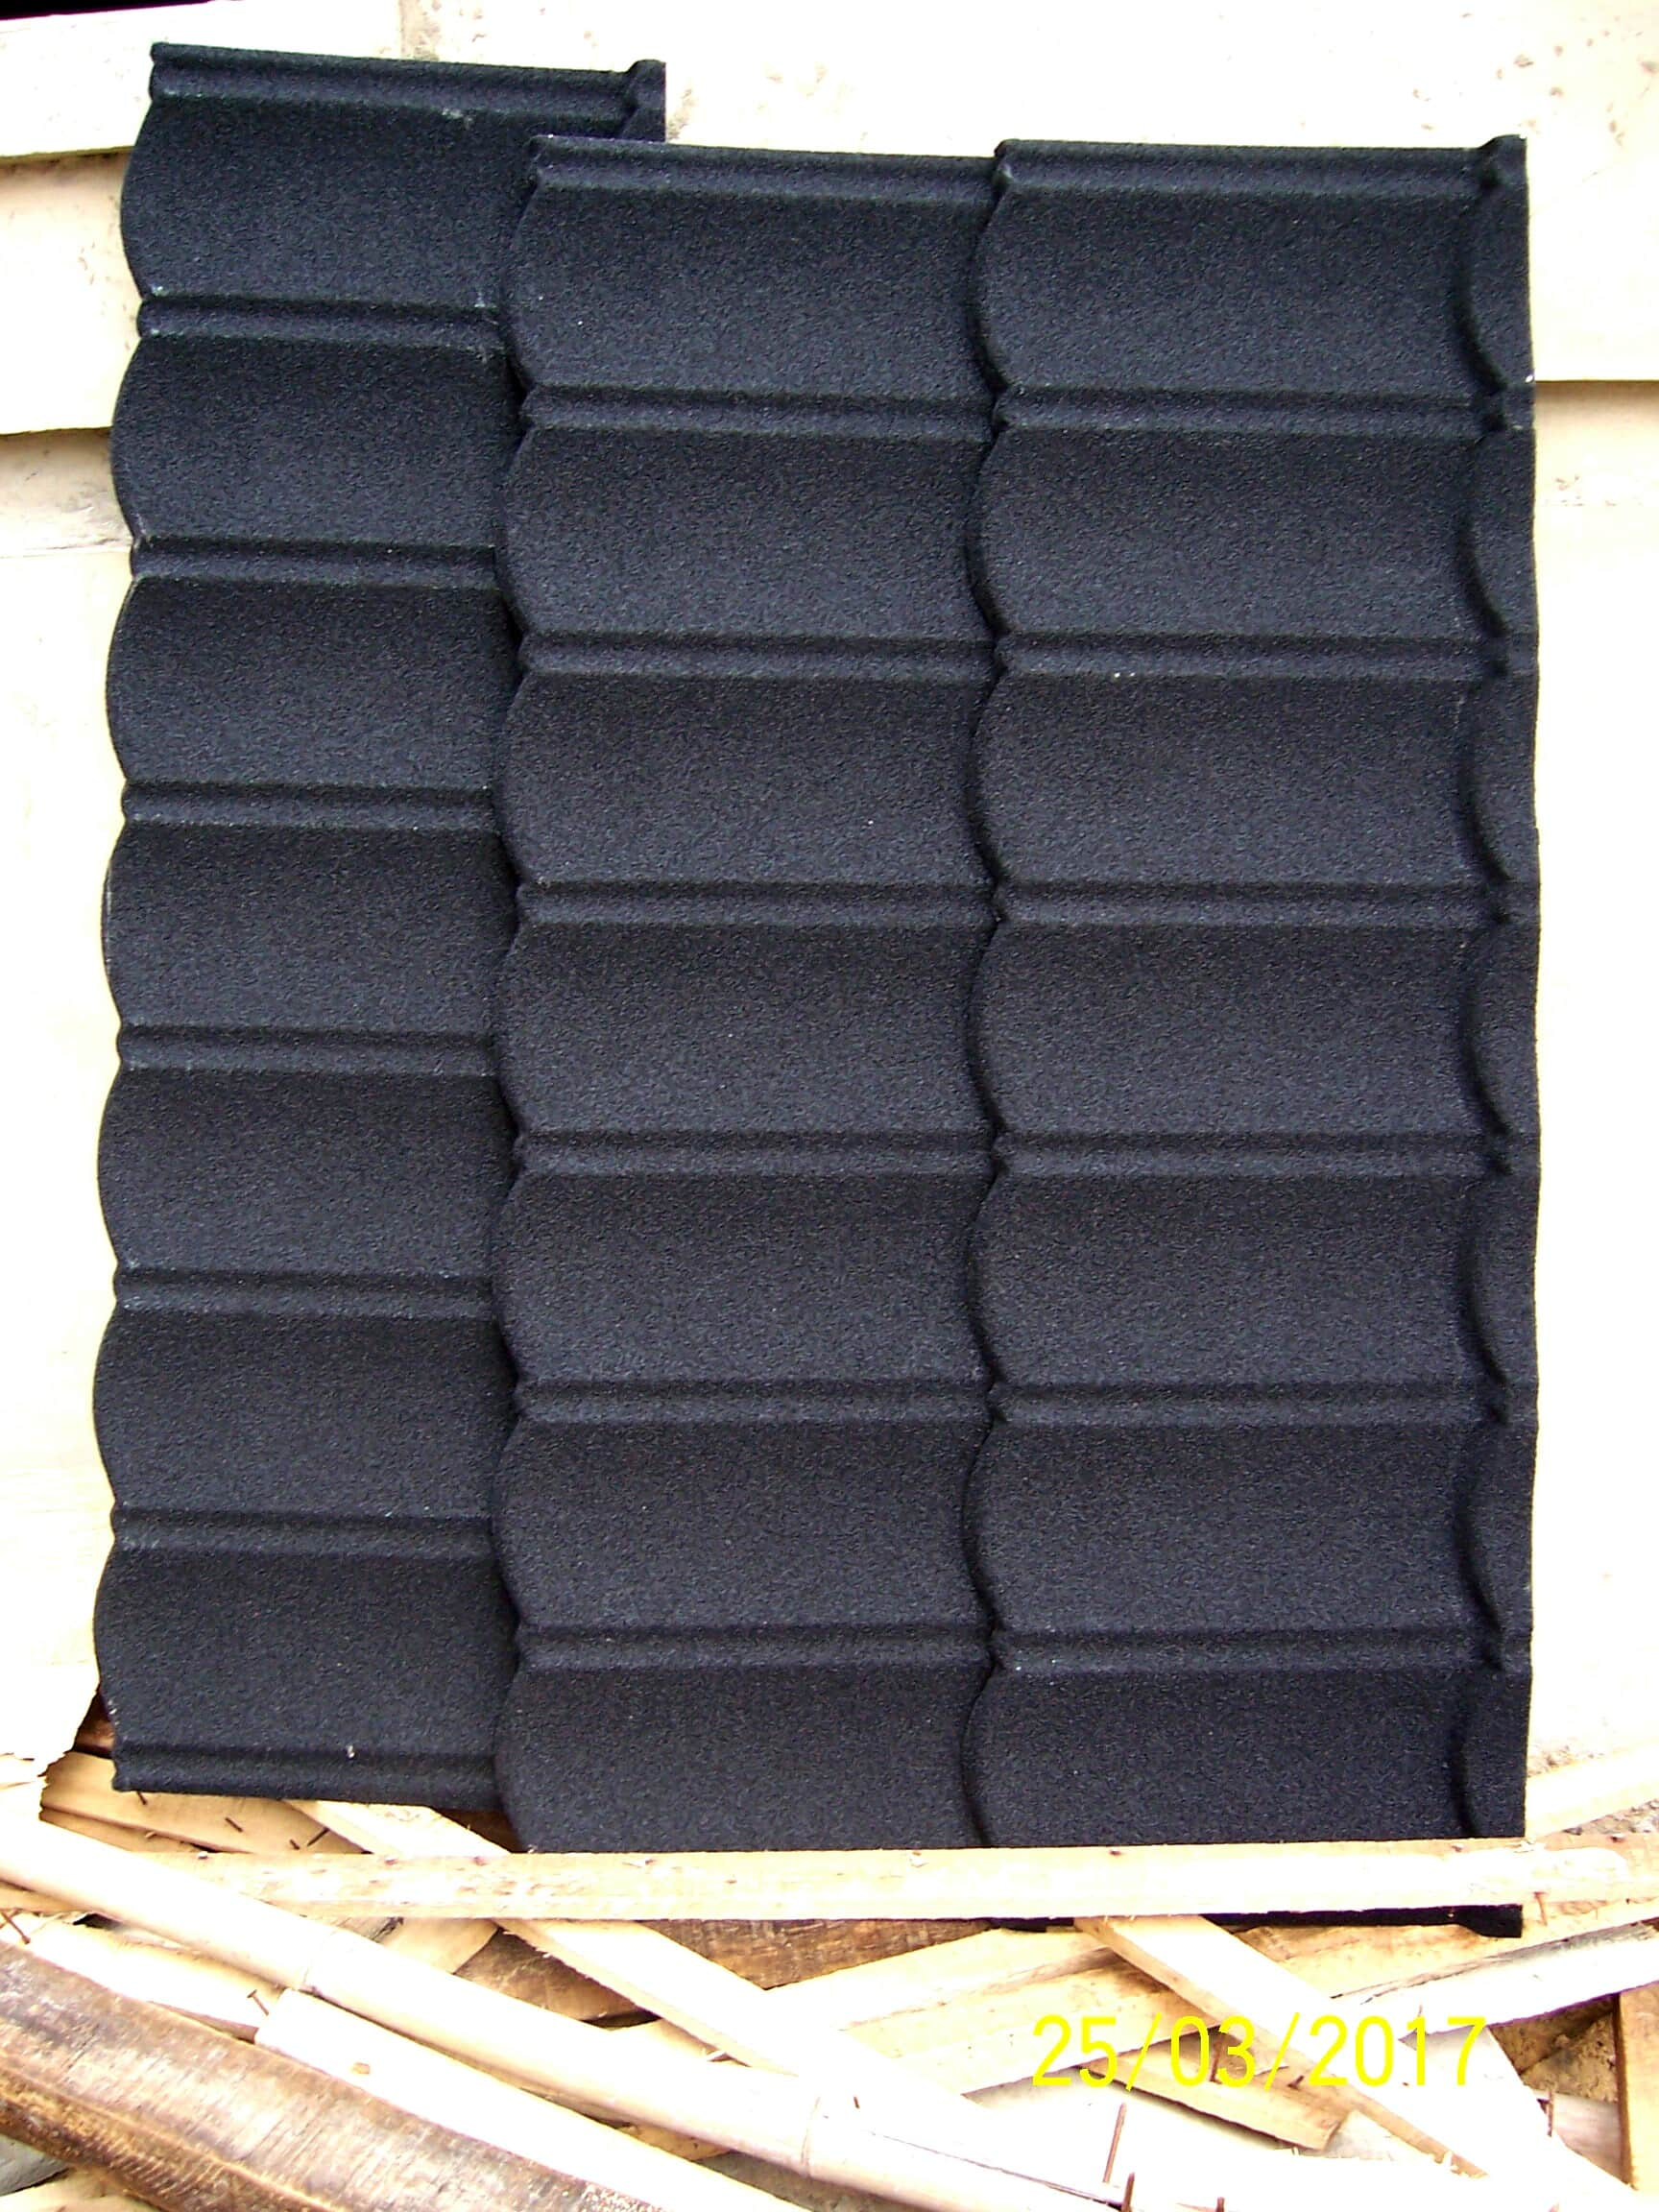 BUY QUALITY NEW ZEALAND STONE COATED ROOFING